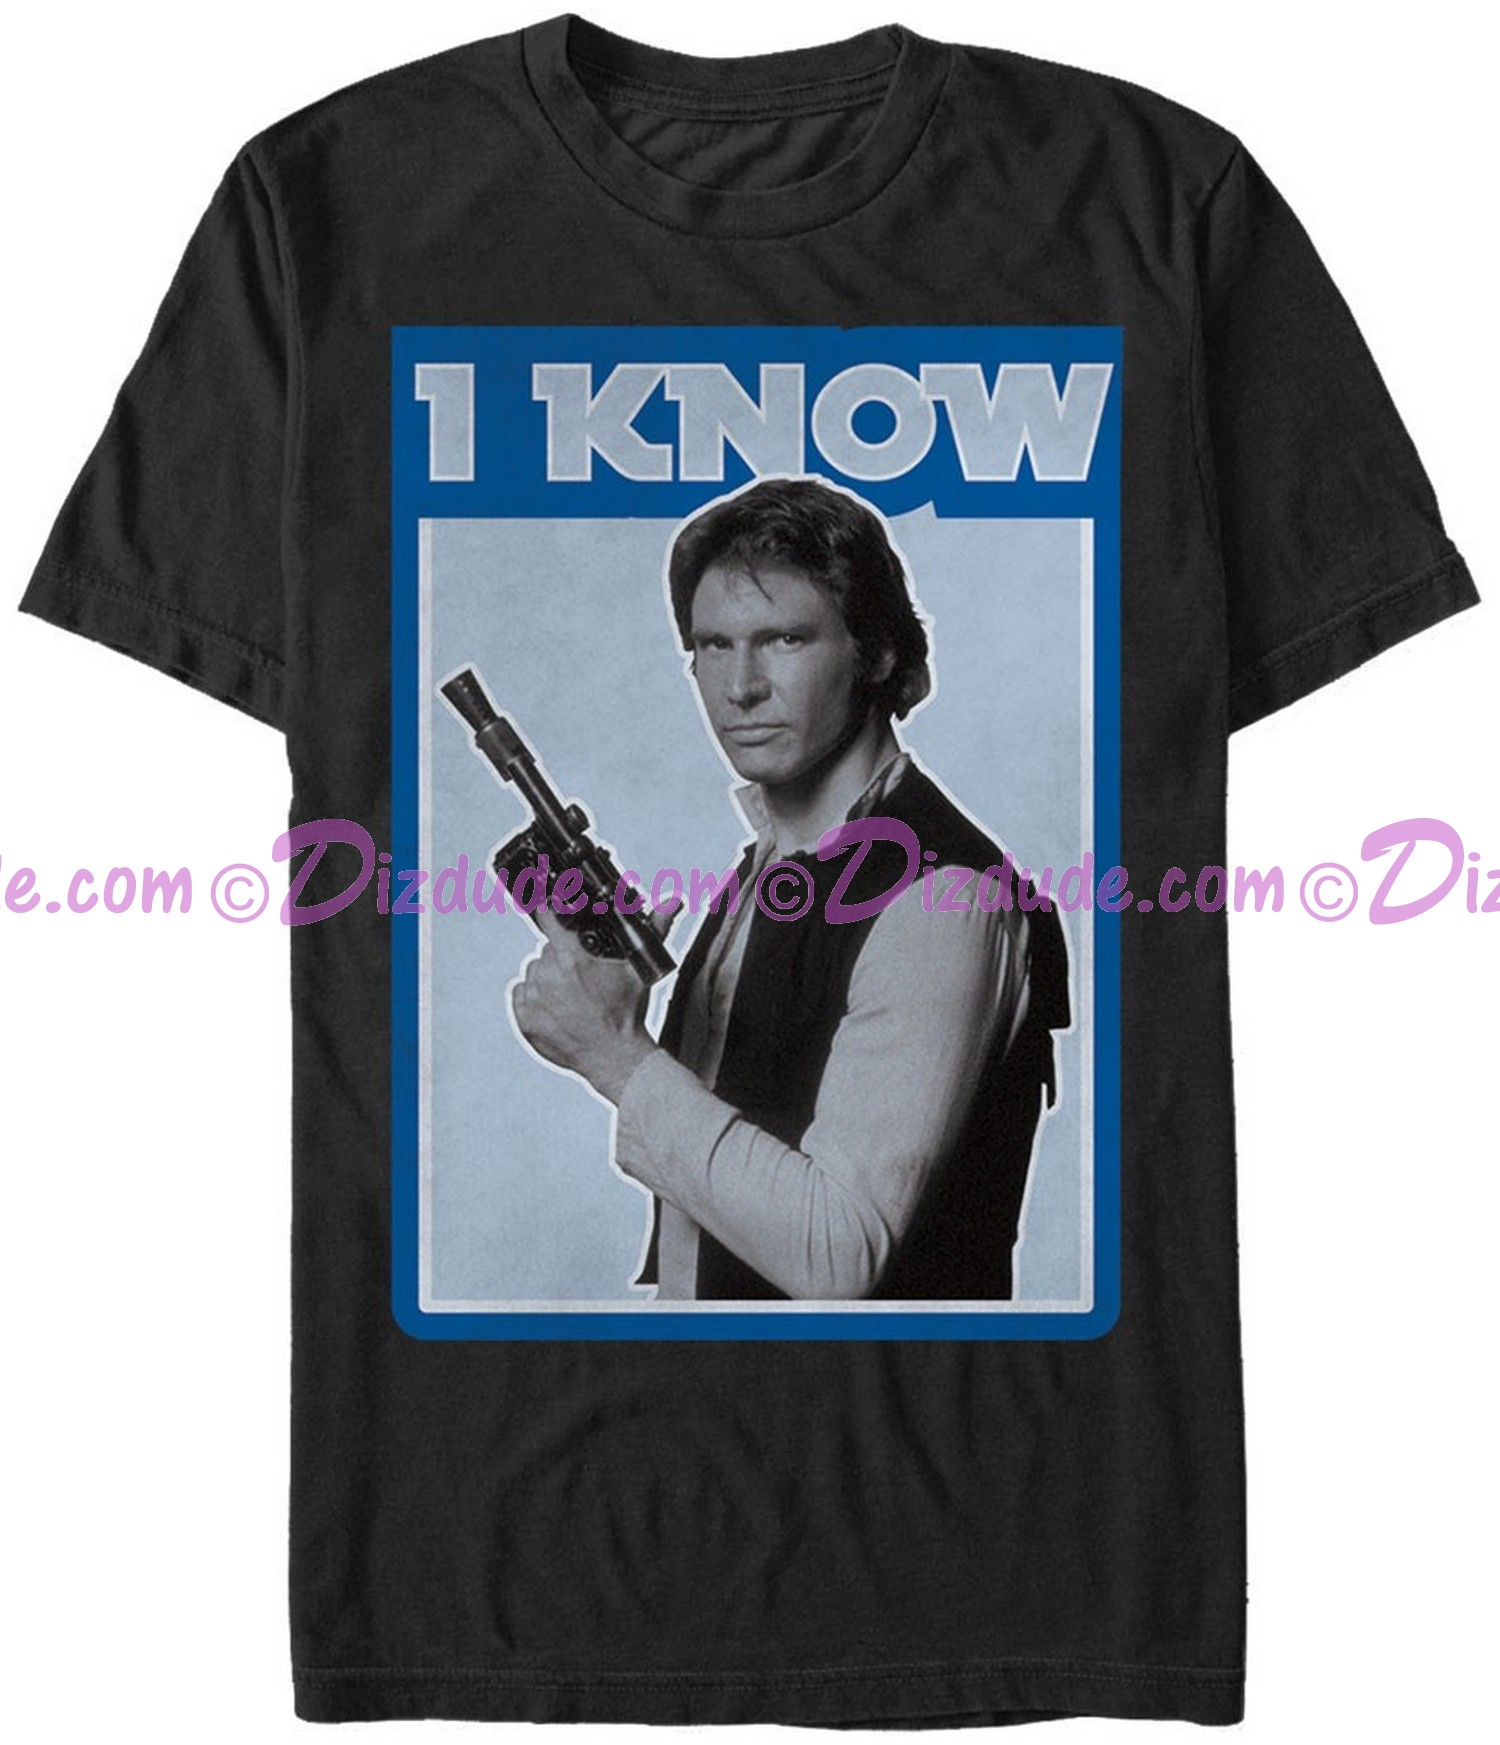 Star Wars Han Solo Famous Love Quote I Know Adult Companion T-Shirt (Tshirt, T shirt or Tee) © Dizdude.com